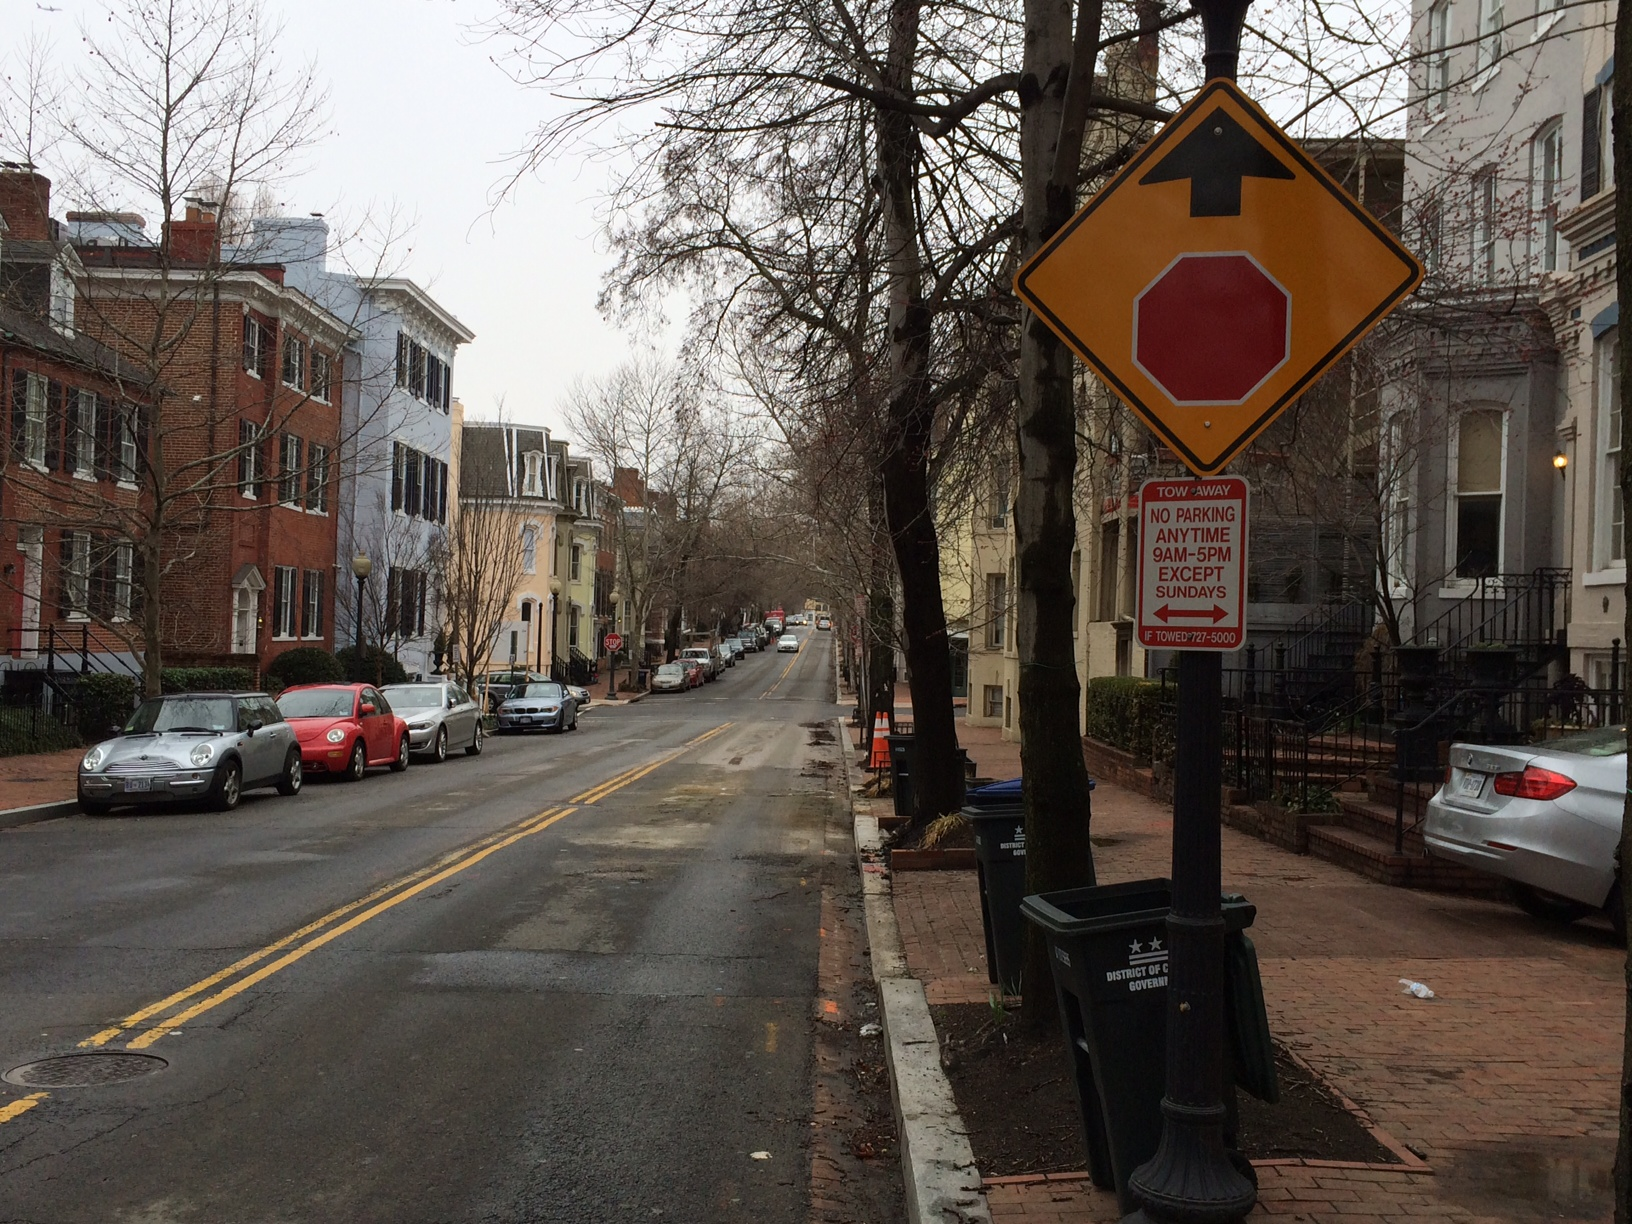 D.C. admits Sunday parking sign is wrong